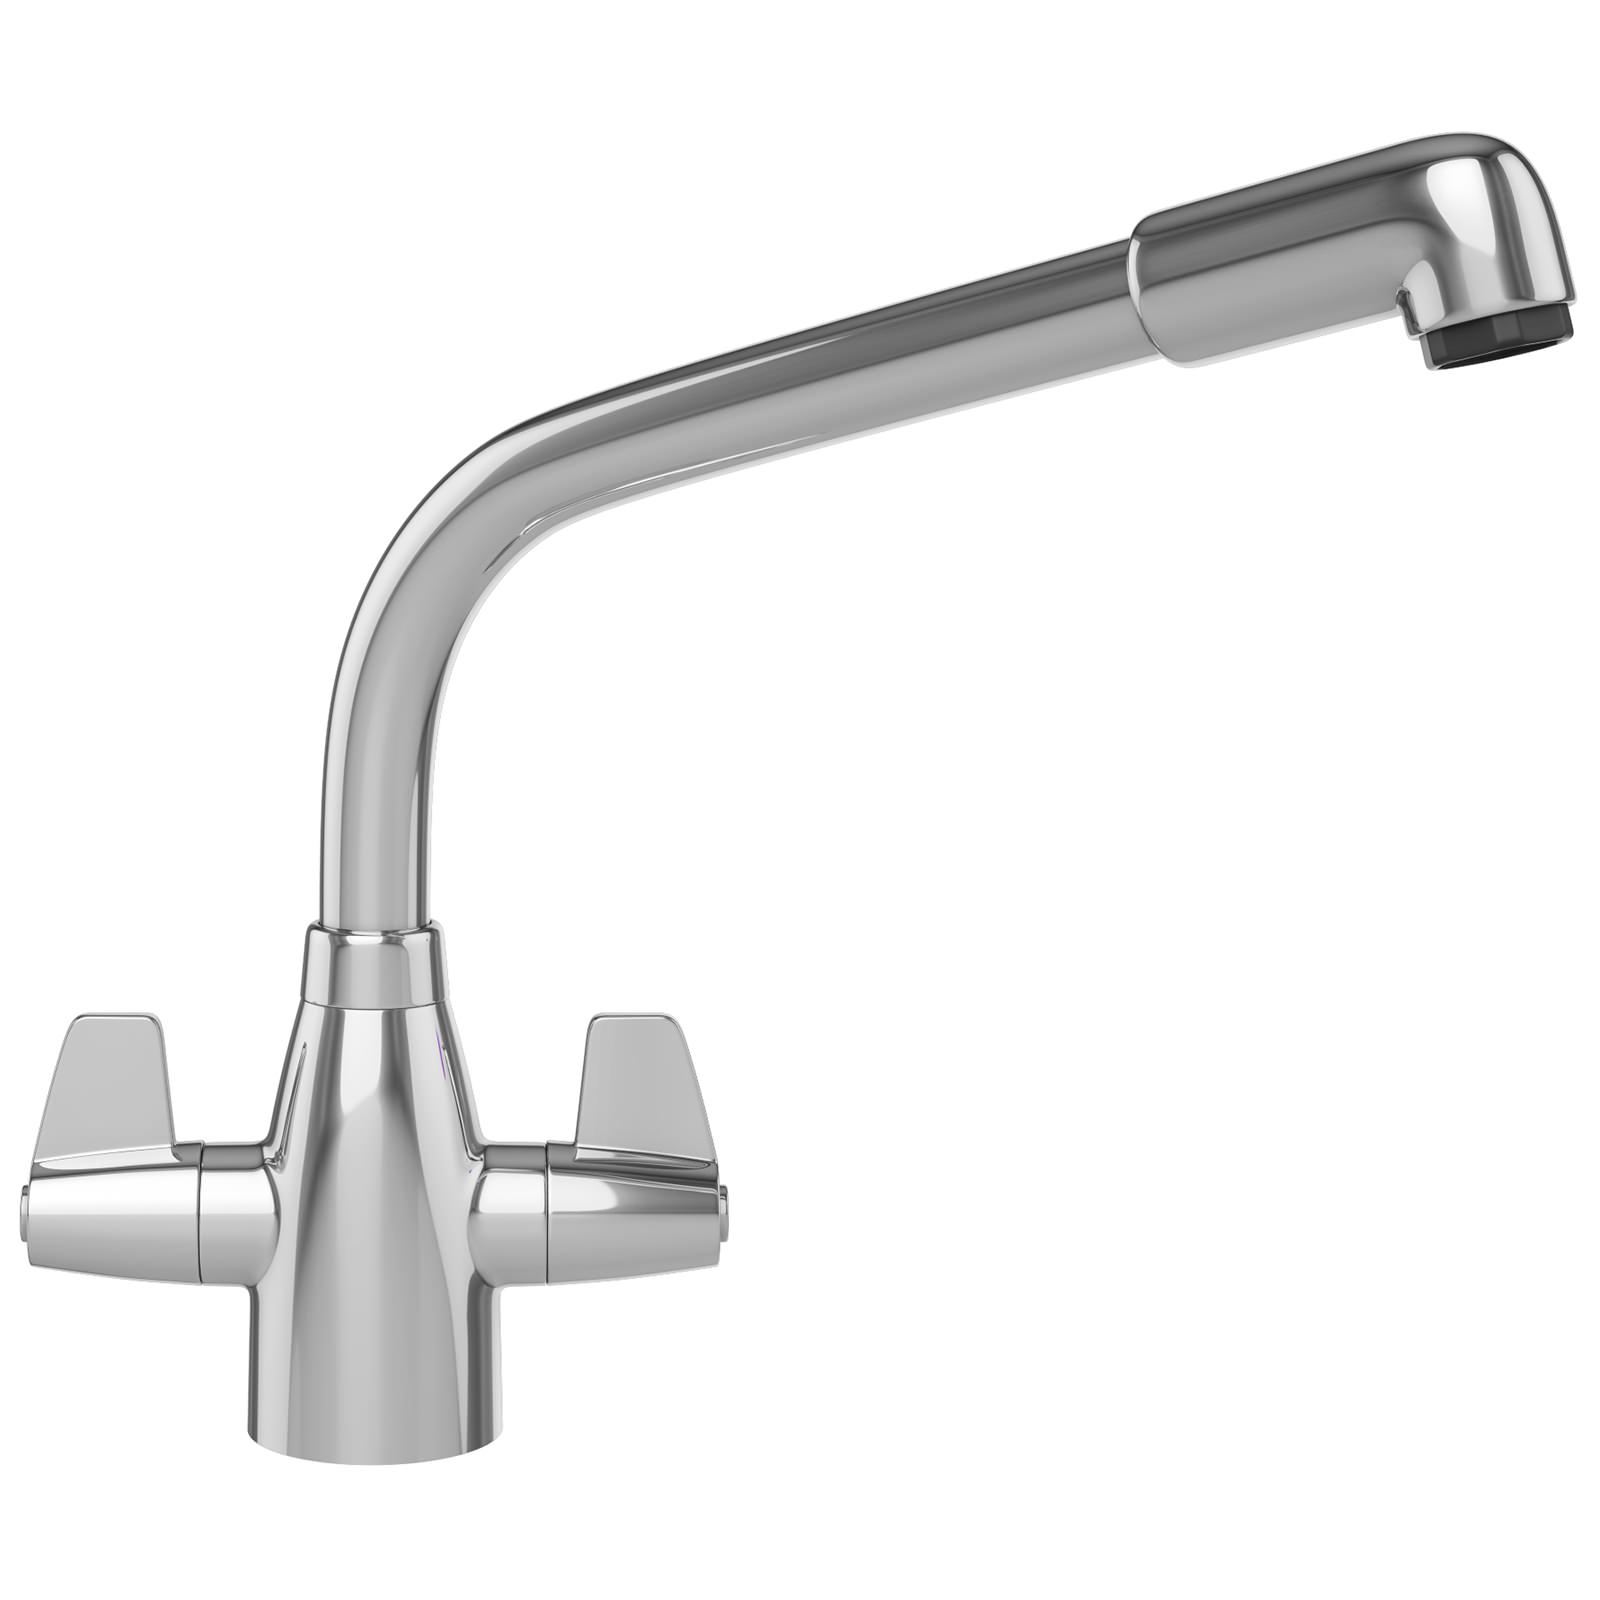 White Kitchen Mixer Tap franke davos kitchen sink mixer tap chrome | 1150046694